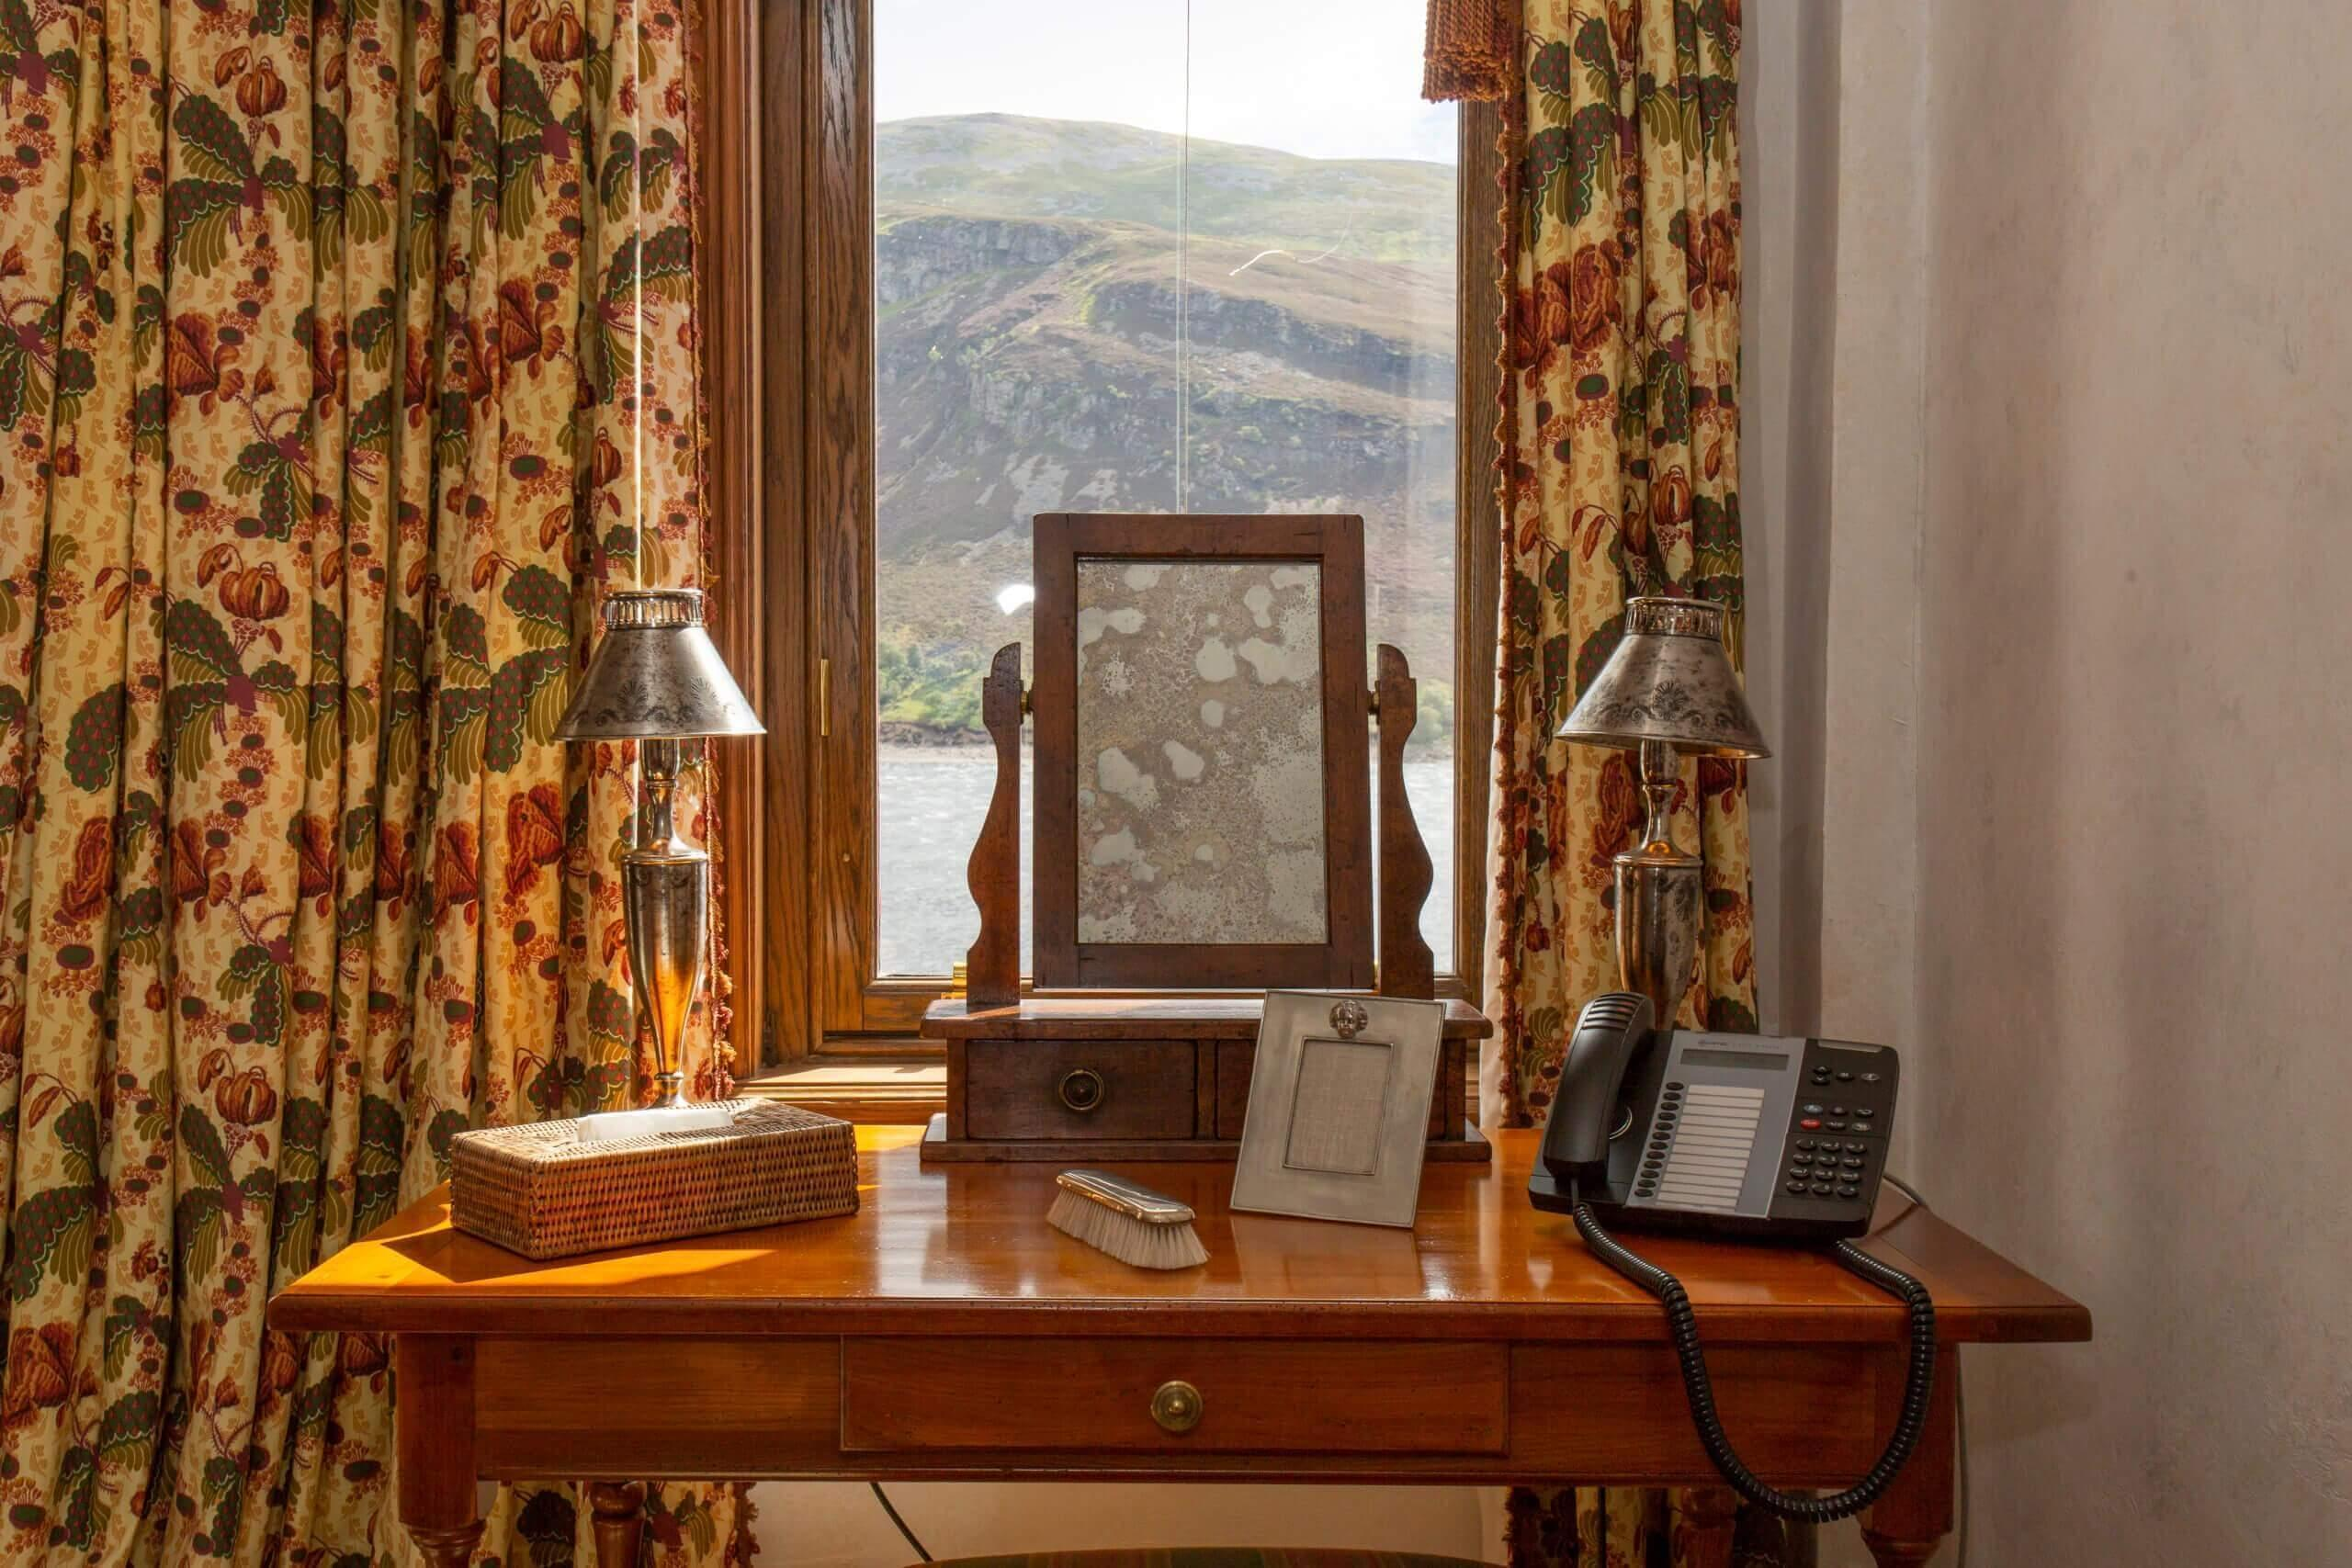 Gate Lodge bedroom with incredible views